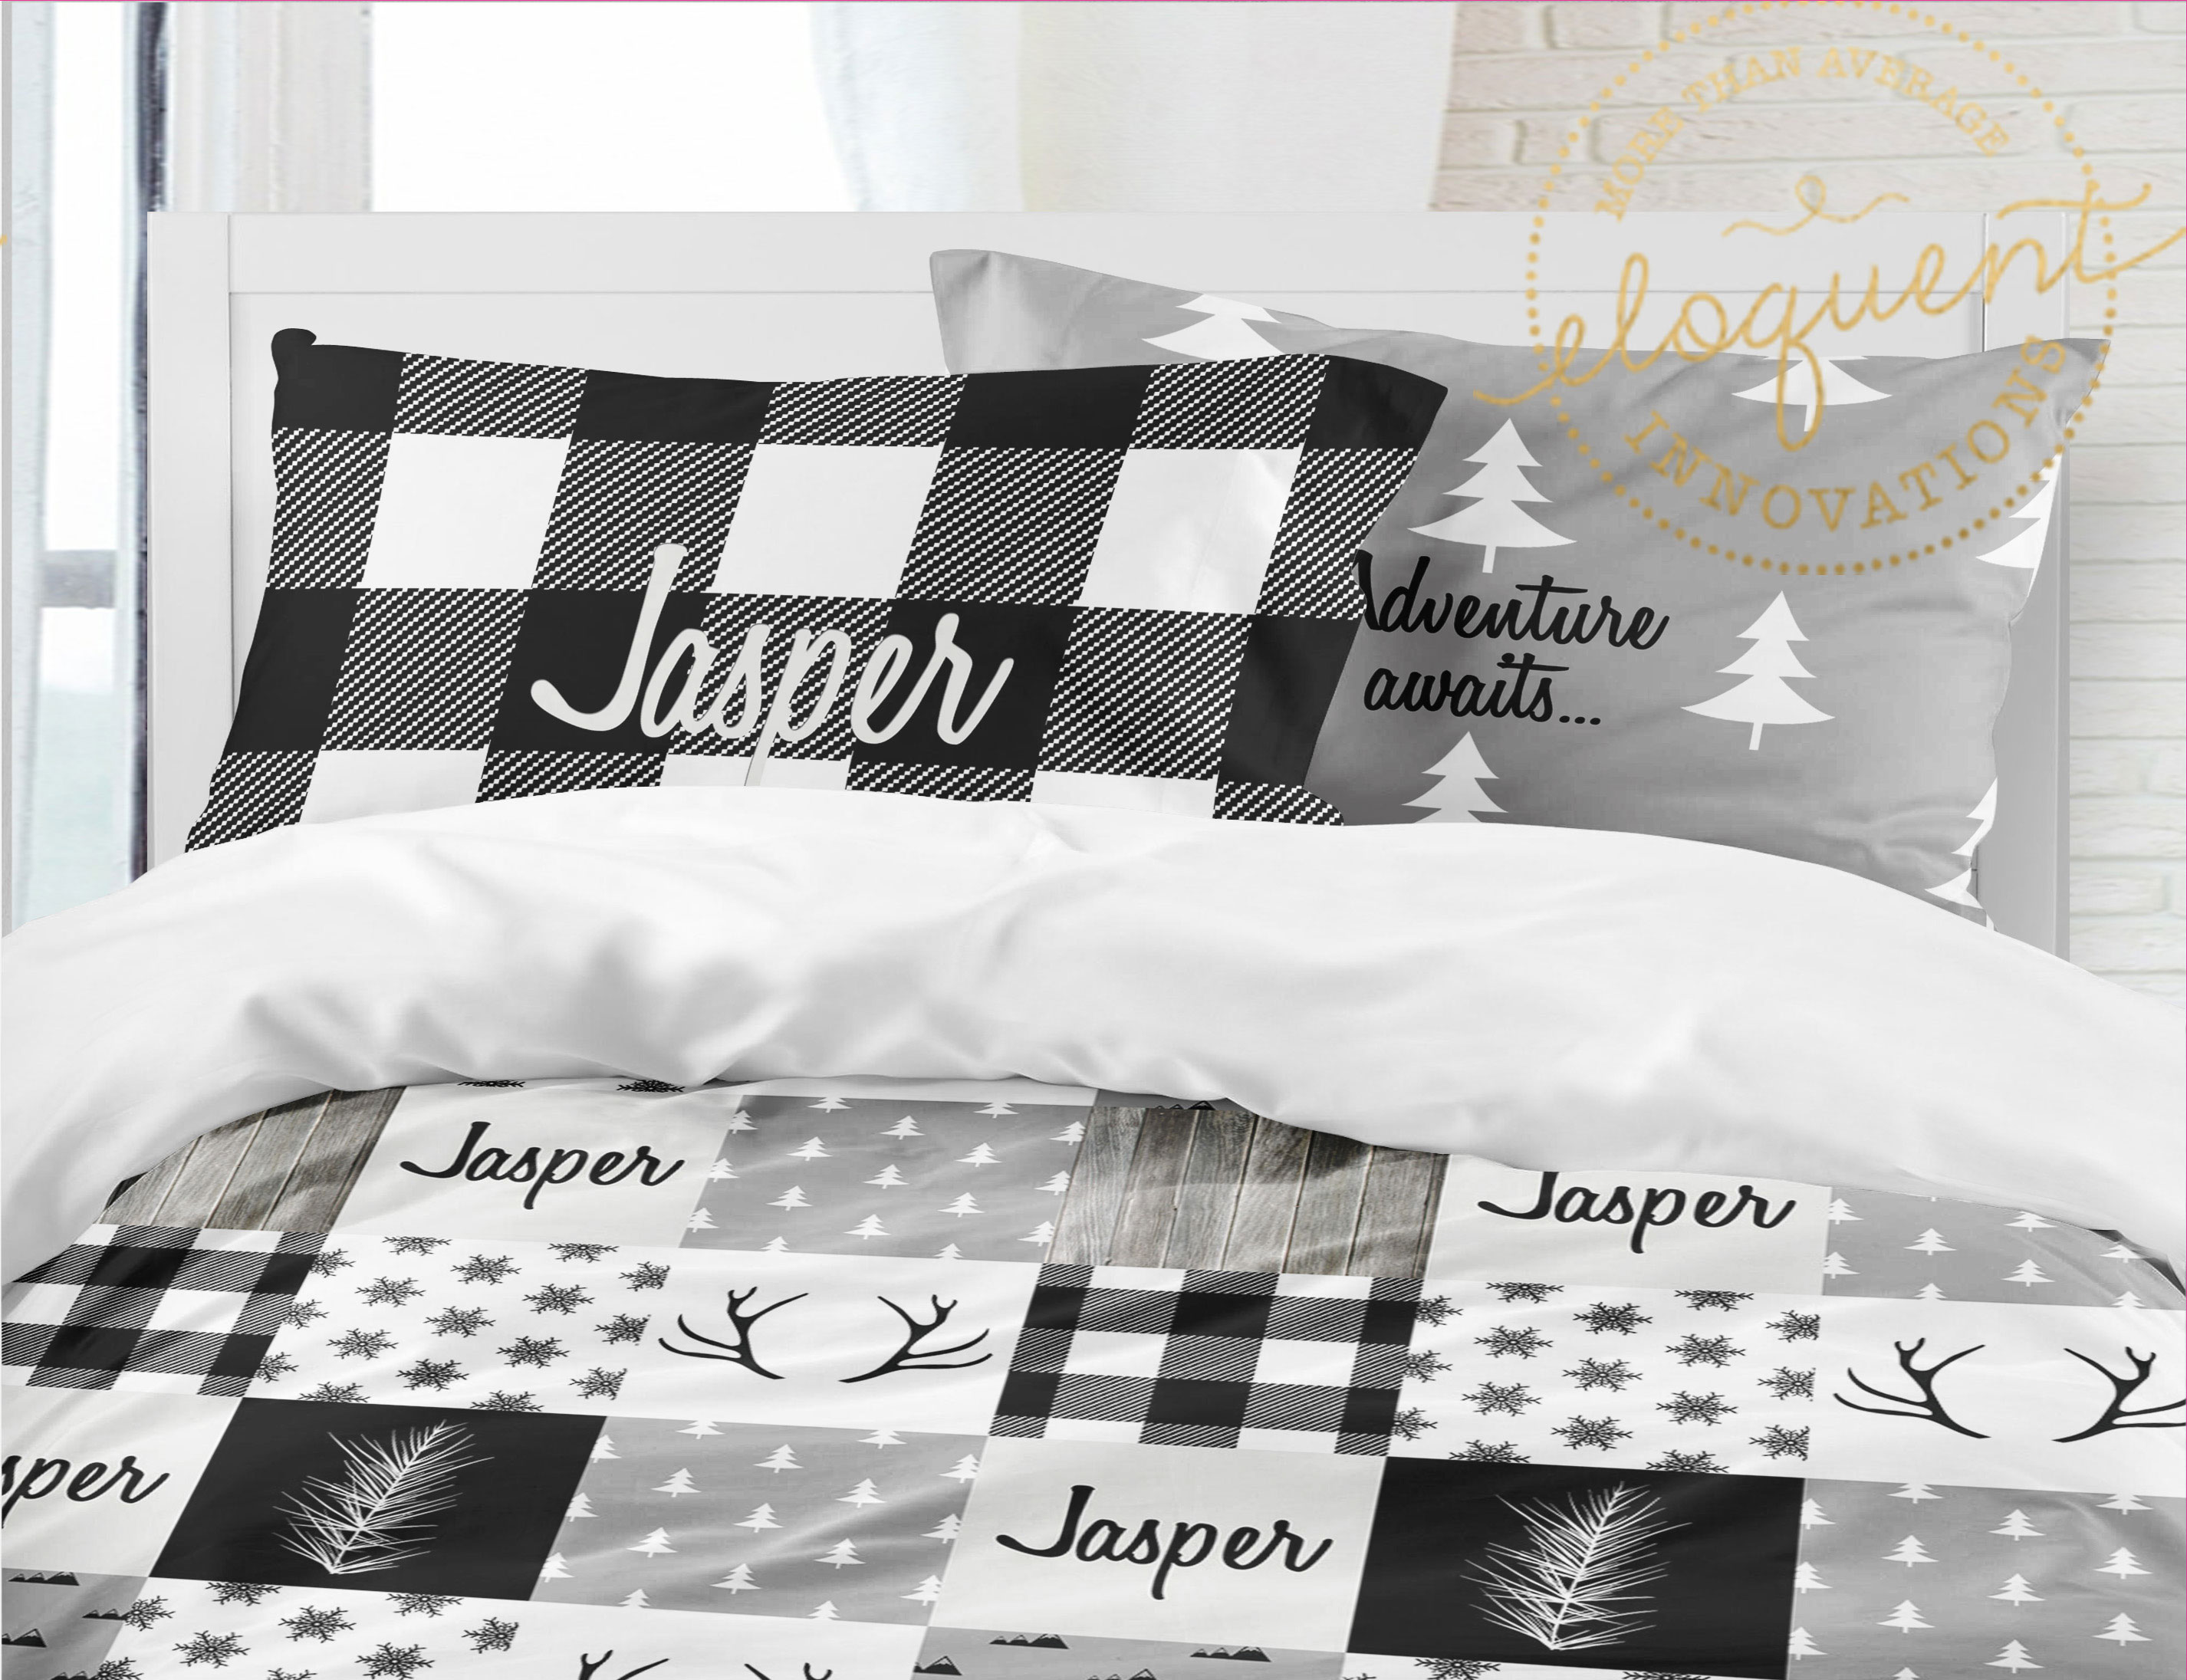 Christmas Comforter.Plaid Woodland Bedding Christmas Bedding Sets For Kids Personalized Comforter Or Duvet Cover 413